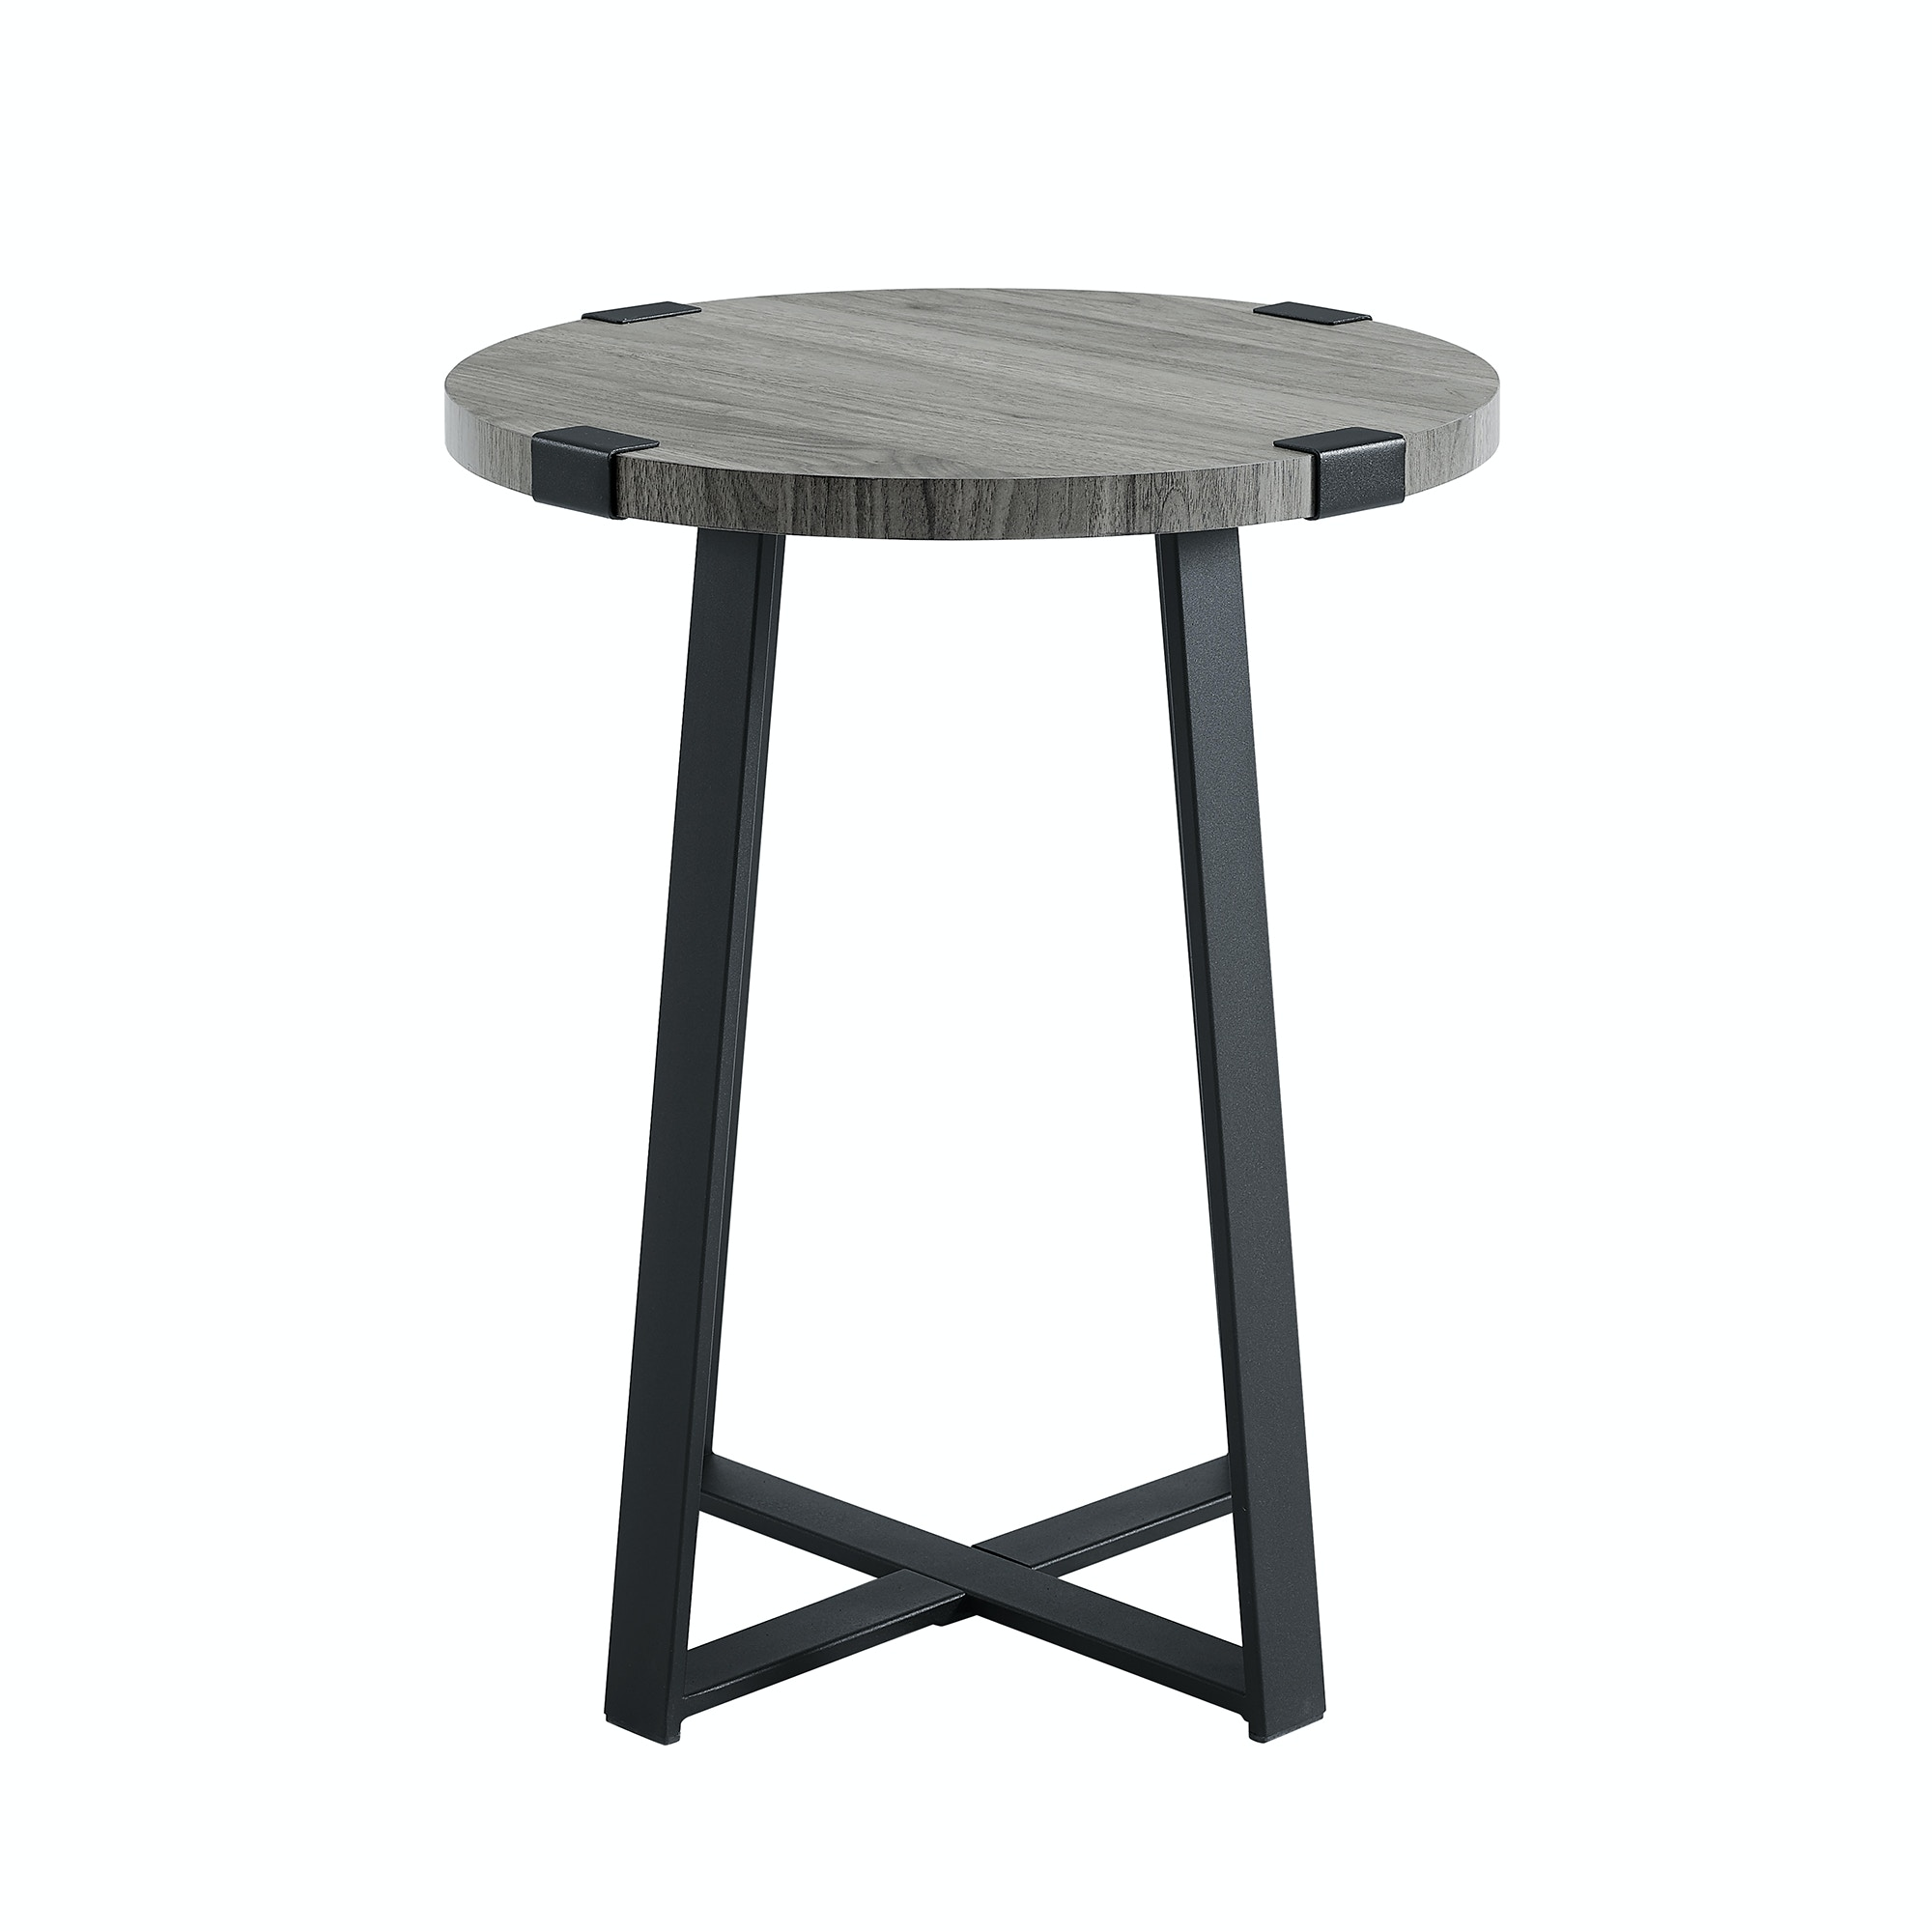 Superieur Ft Myers Rustic Side Table AF18MWSTSG From Walter E. Smithe Furniture +  Design